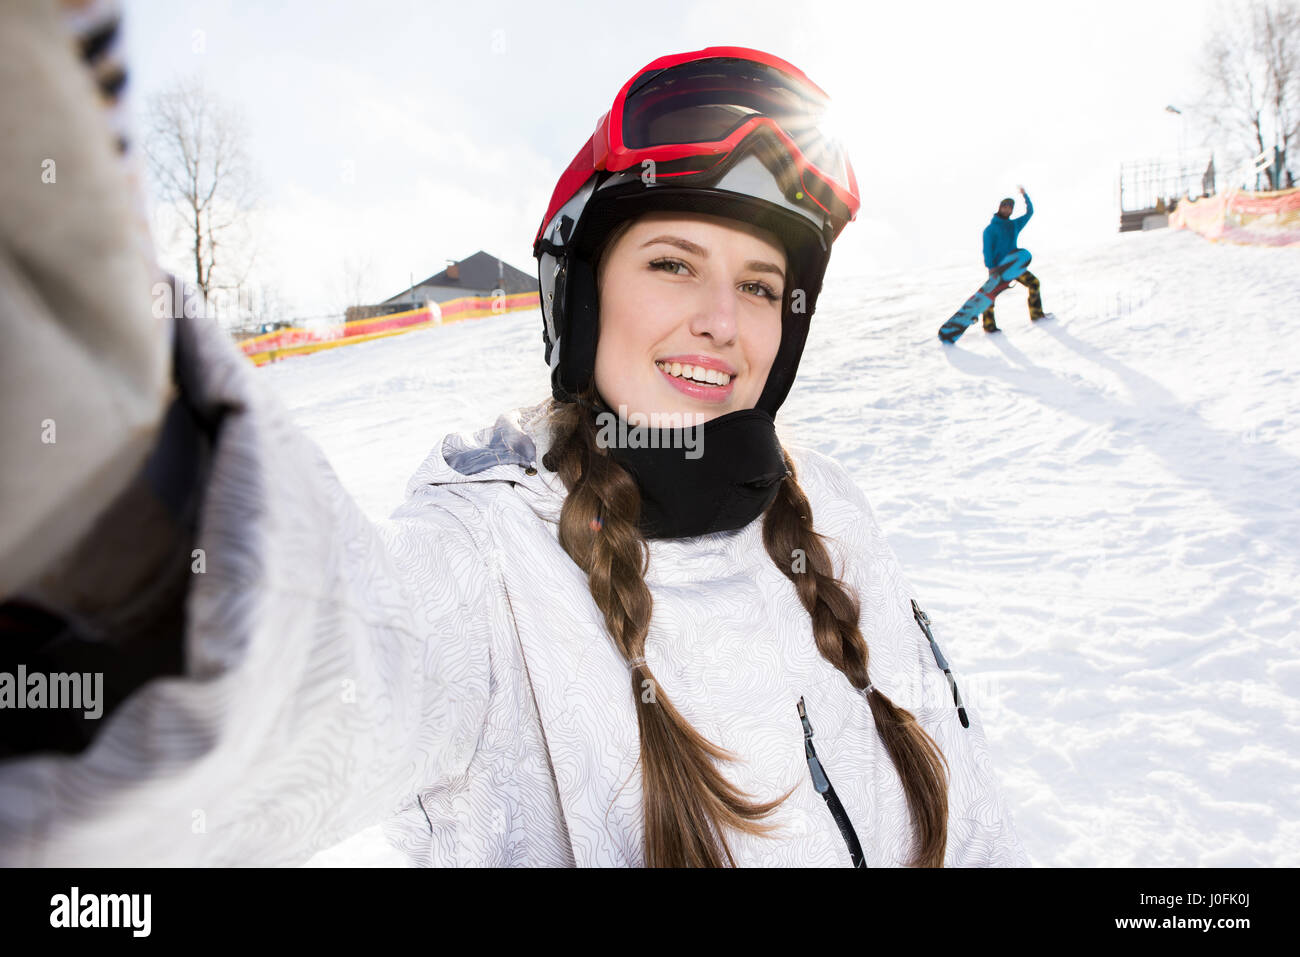 Beautiful smiling female snowboarder taking selfie at ski resort - Stock Image